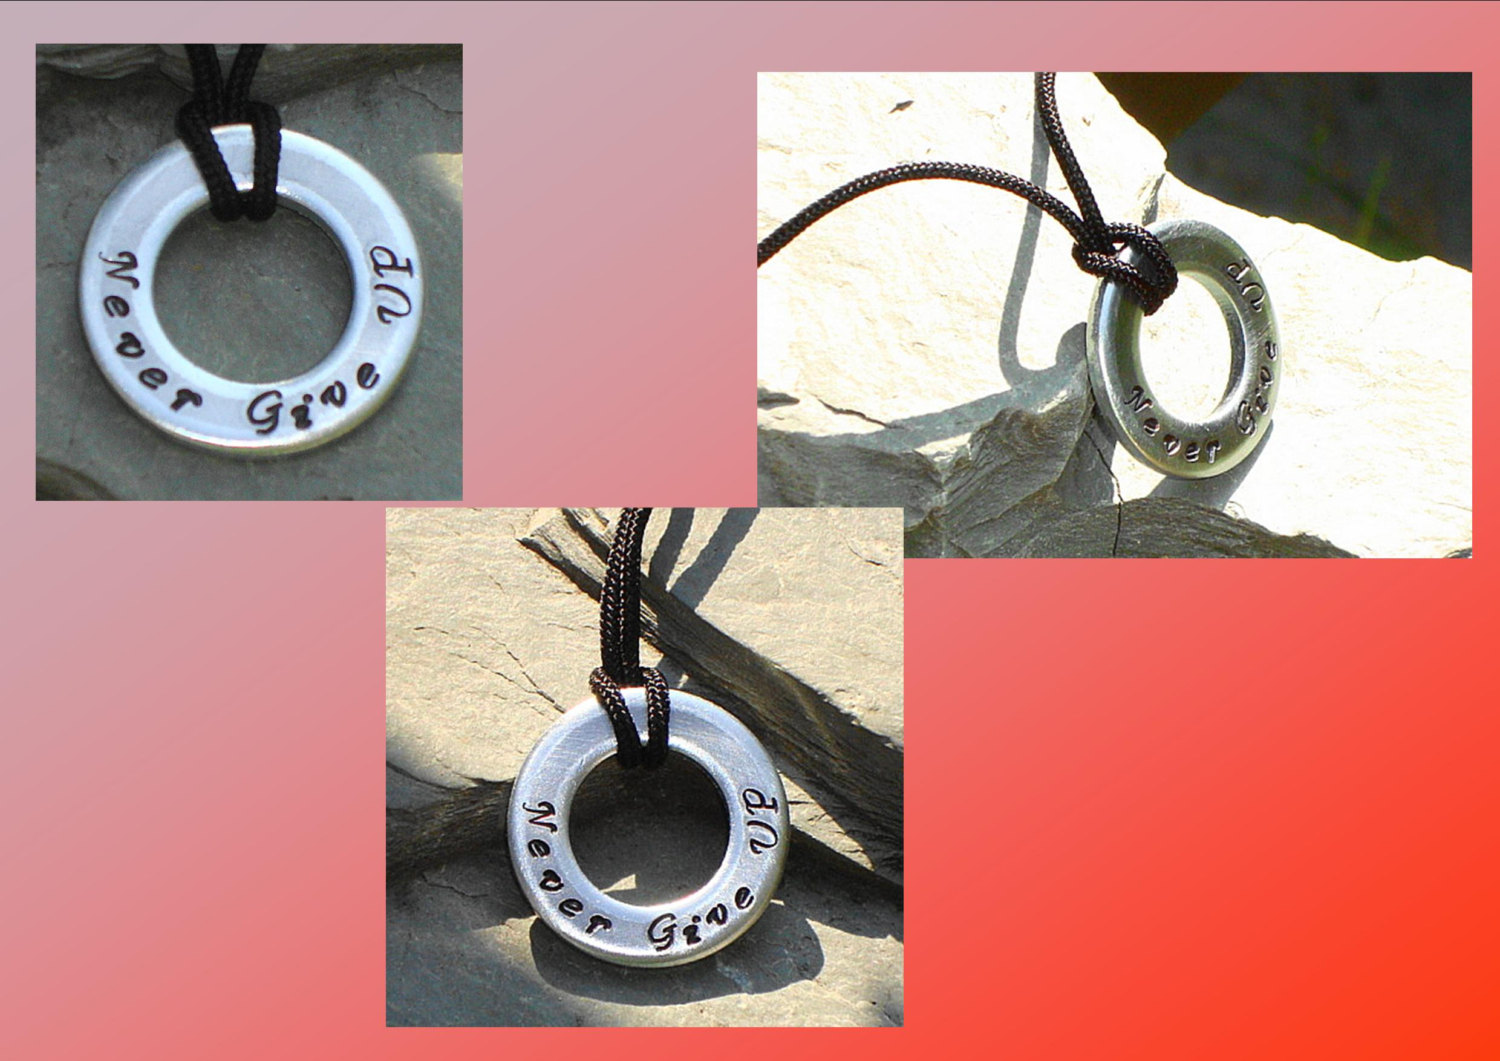 Mens Washer Pendant Steel Washer Necklace  Metal Stamped Washer Pendant Men Masculine Male Jewelry